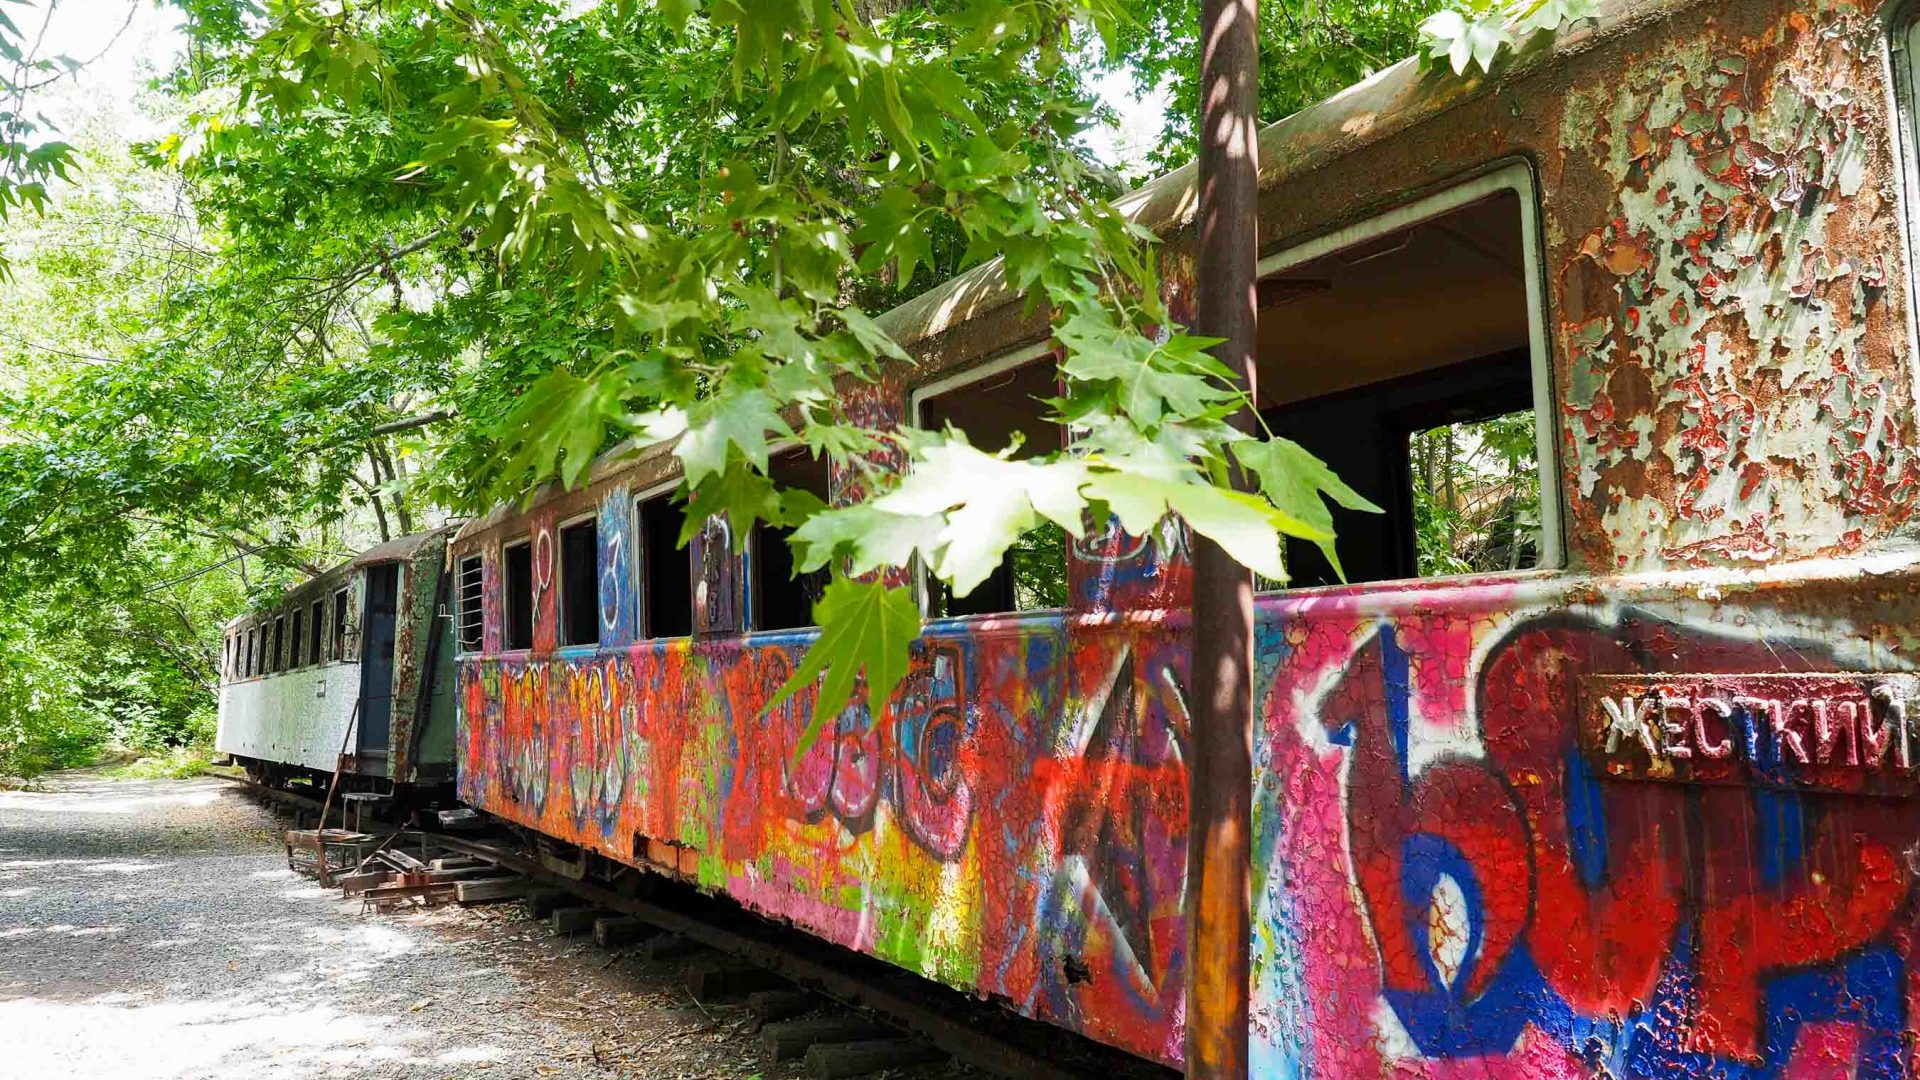 Colored grafiti covers the old train carriages.